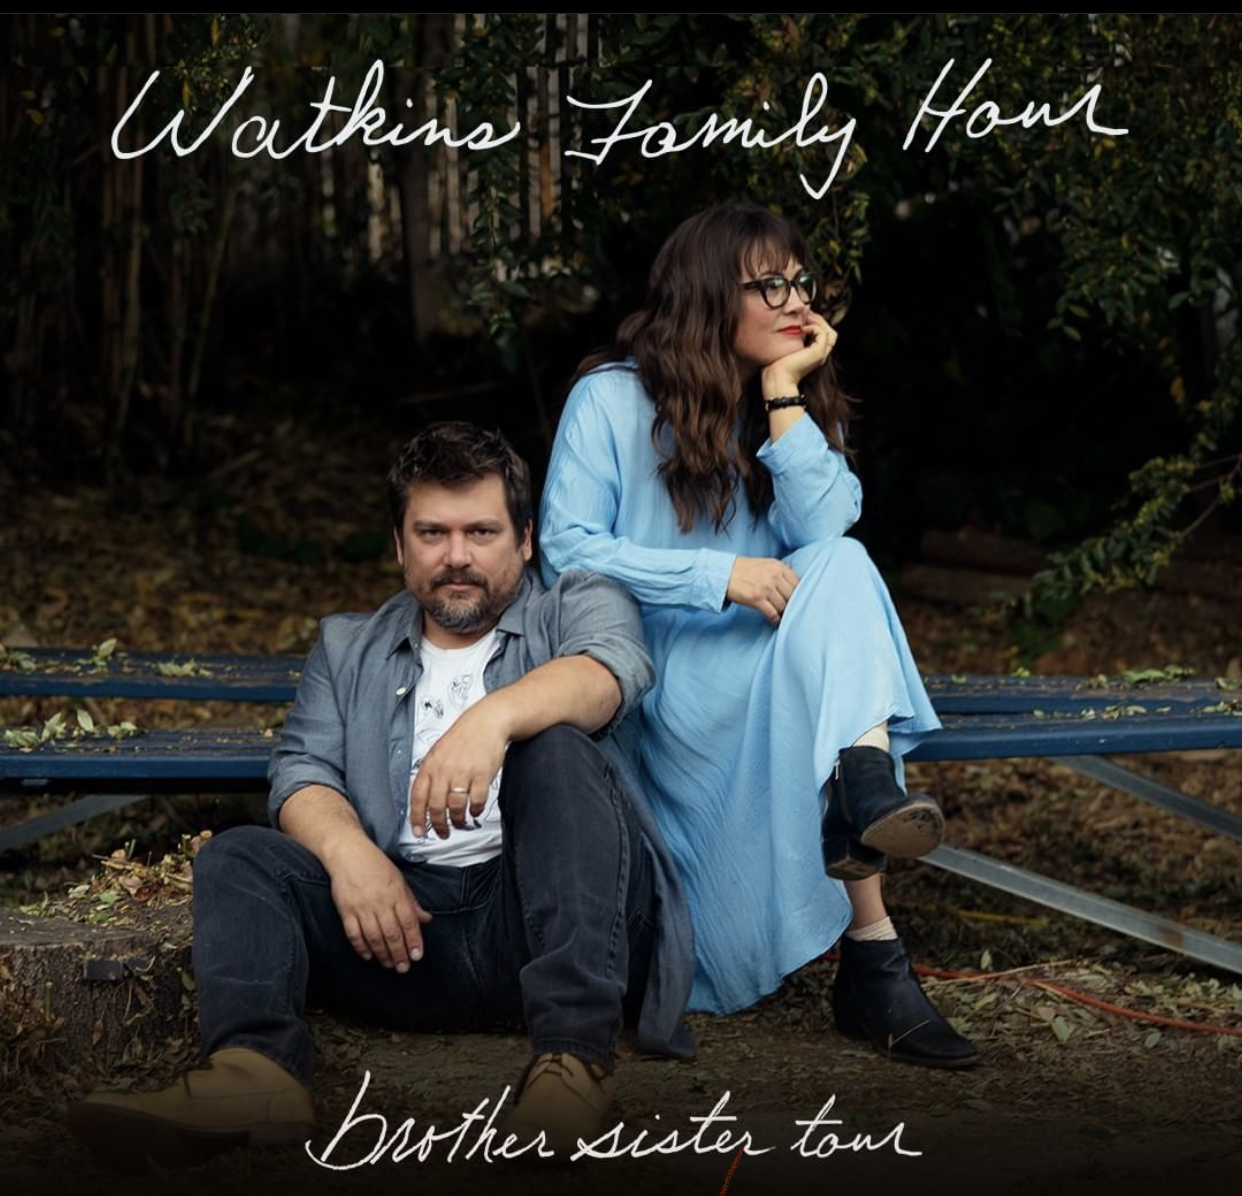 The Watkins Family Hour - Brother Sister Tour (POSTPONED TBA